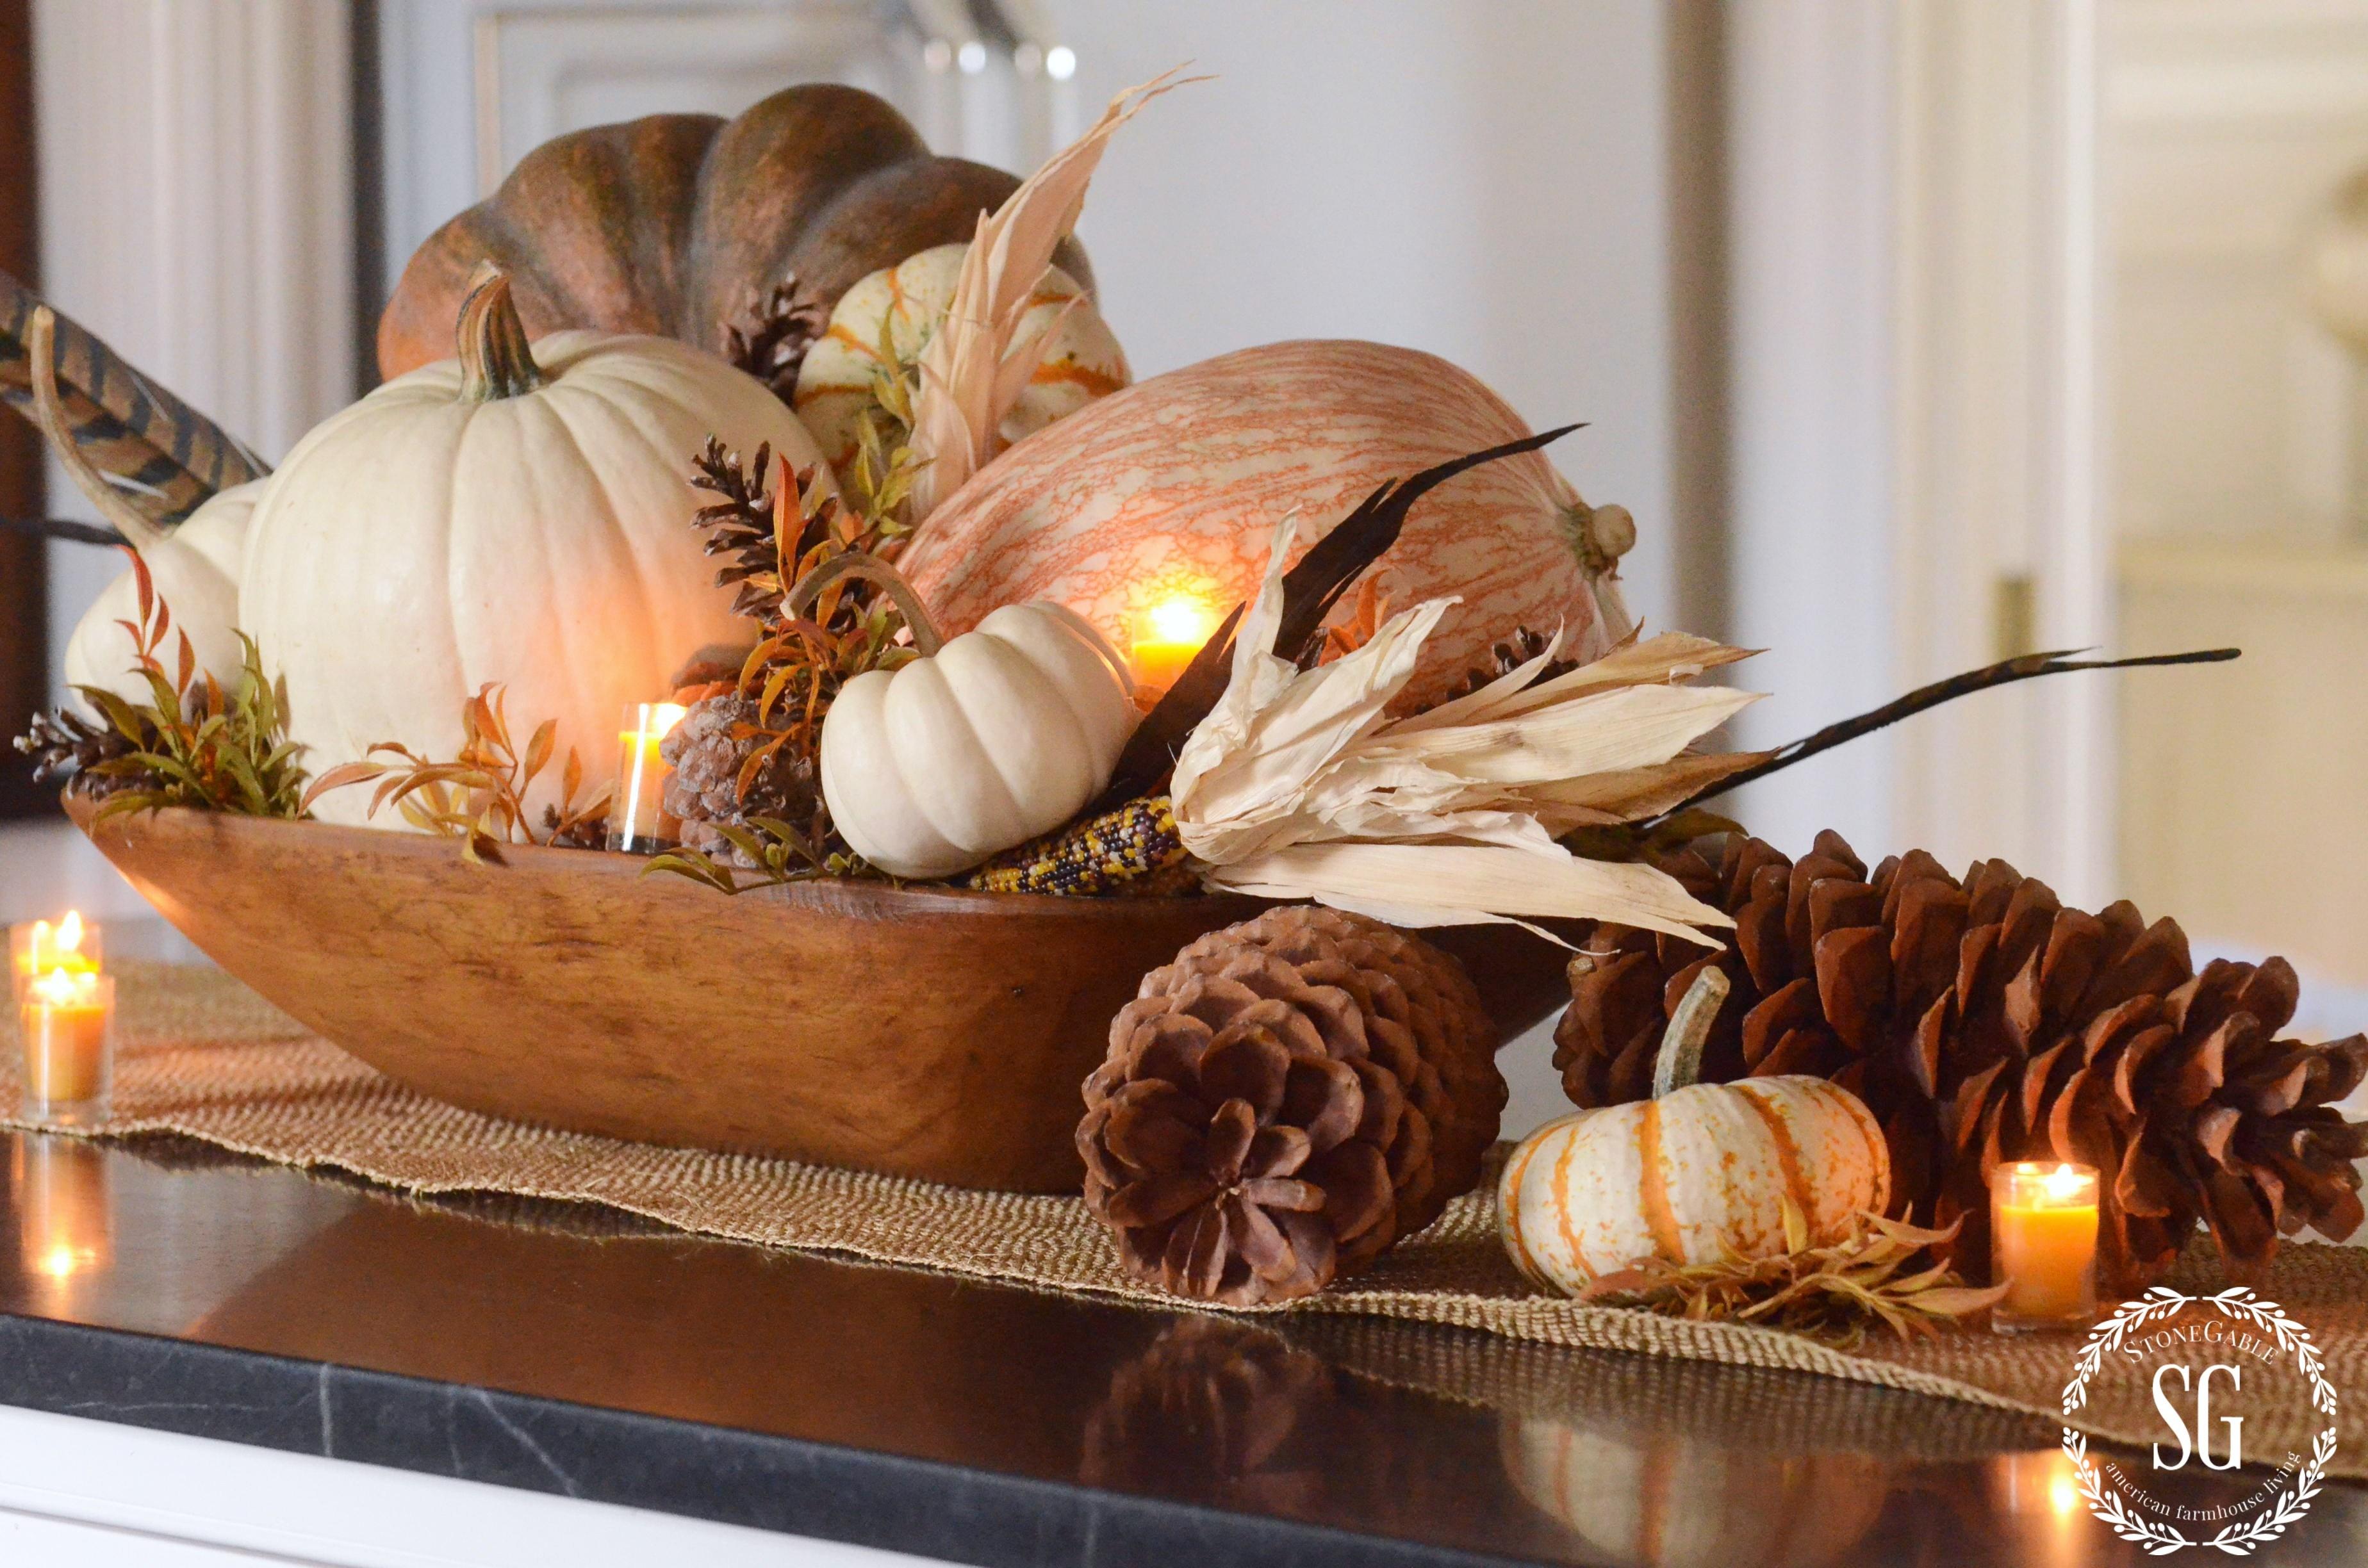 Creative Ideas for Fall or Thanksgiving Table Settings and Home Decor 21